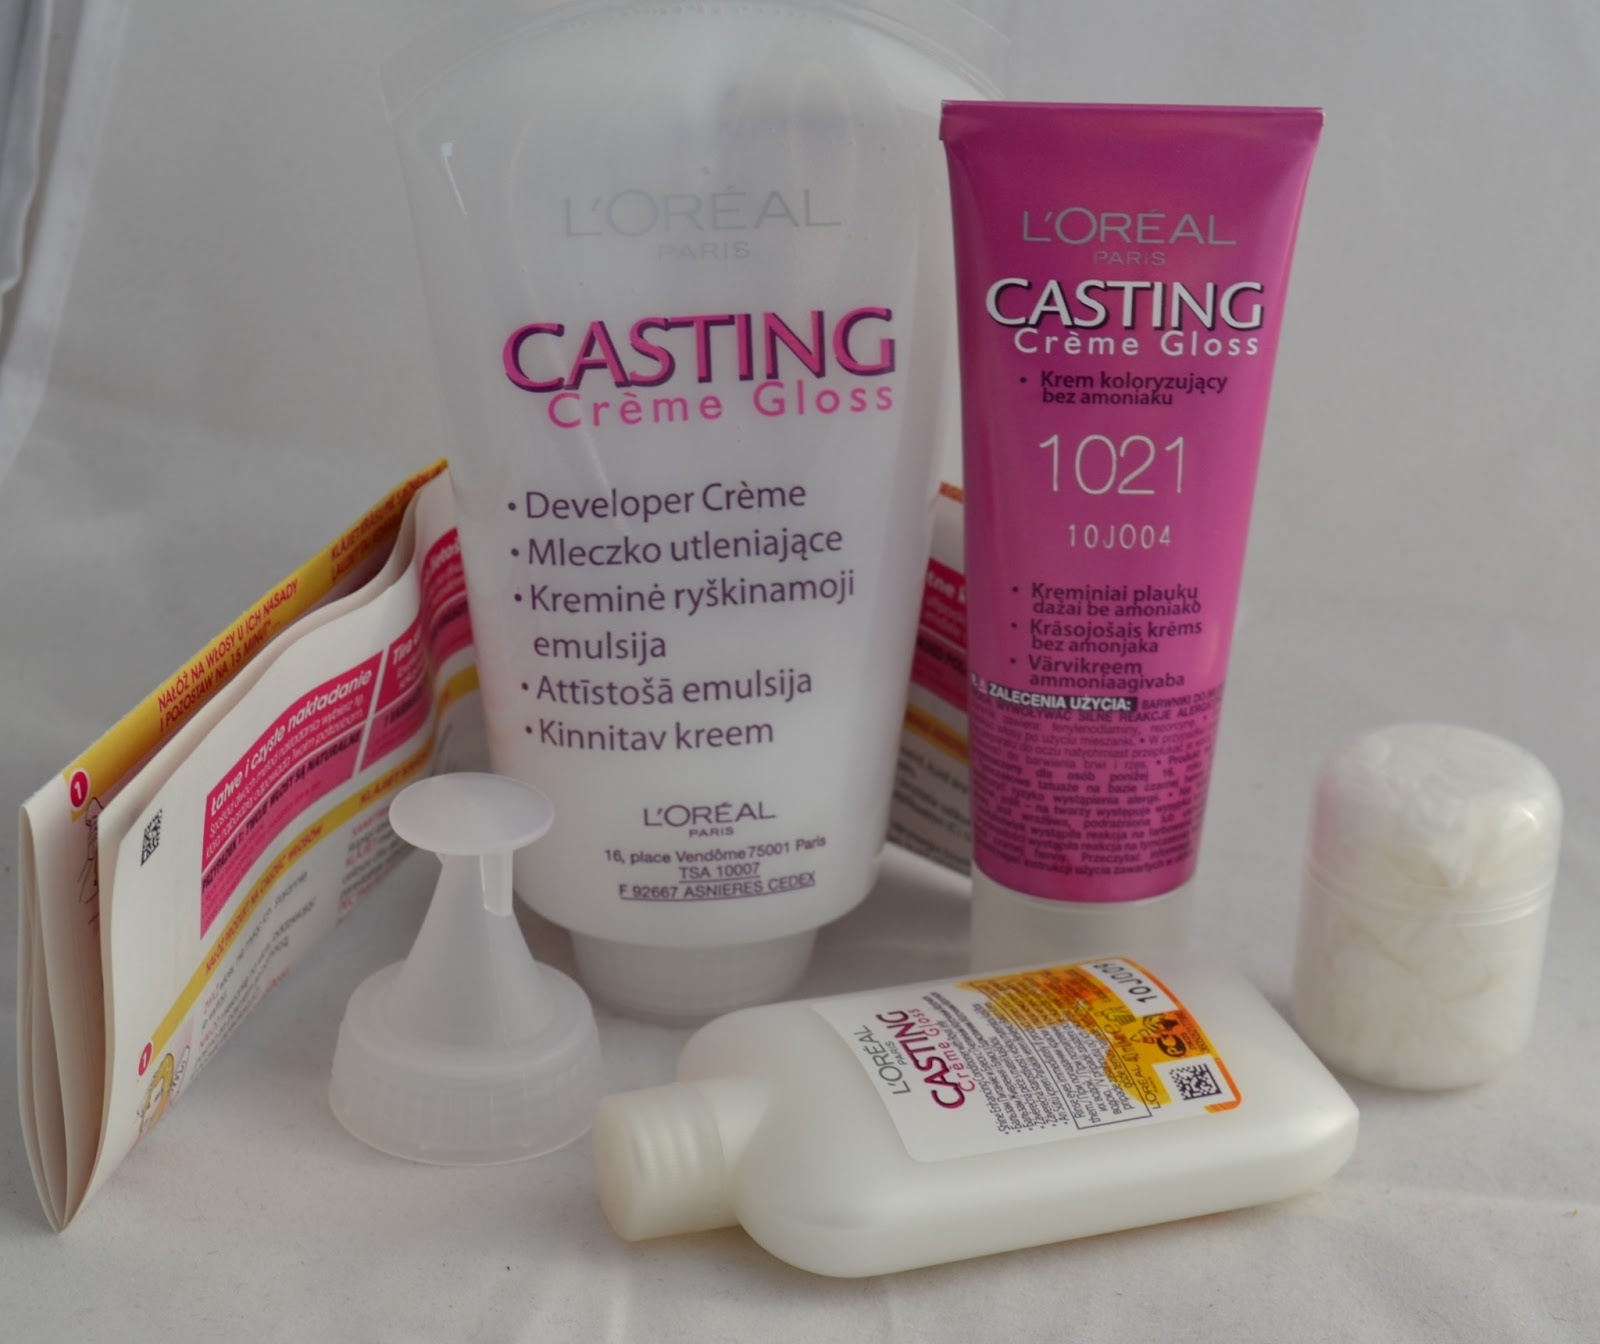 developer creme, dye, shine enhancing conditioner, gloves, instructions